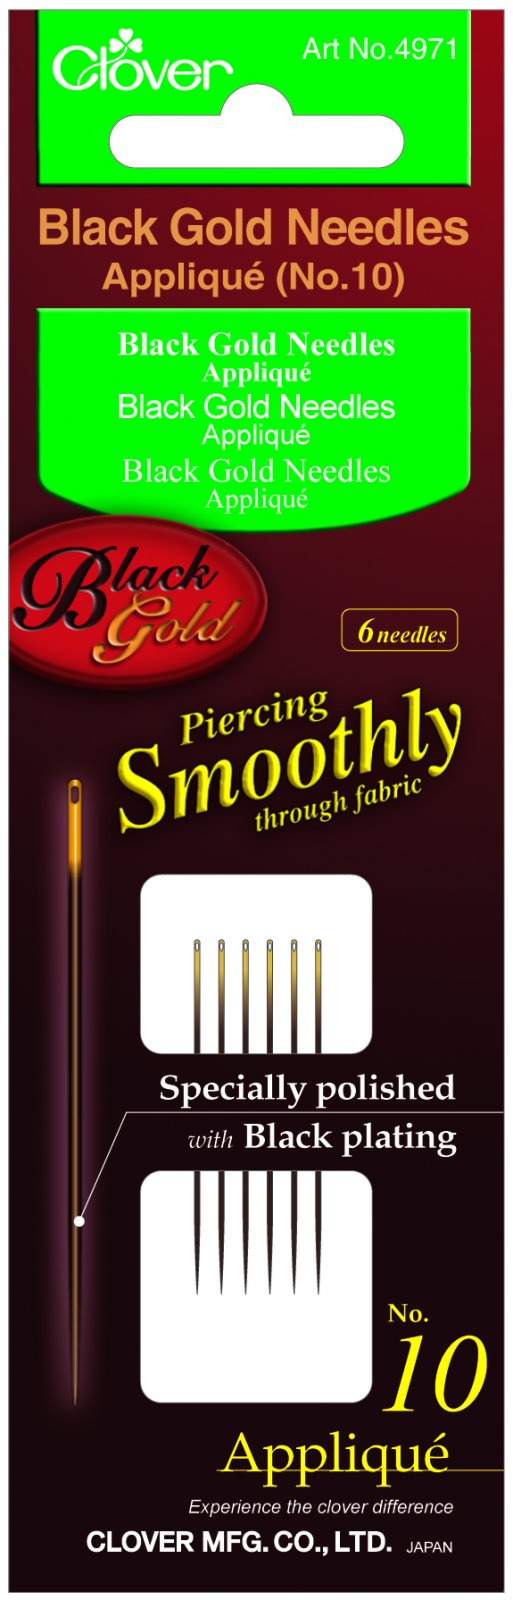 Clover - 4971 Black Gold Applique Needles (No. 10)